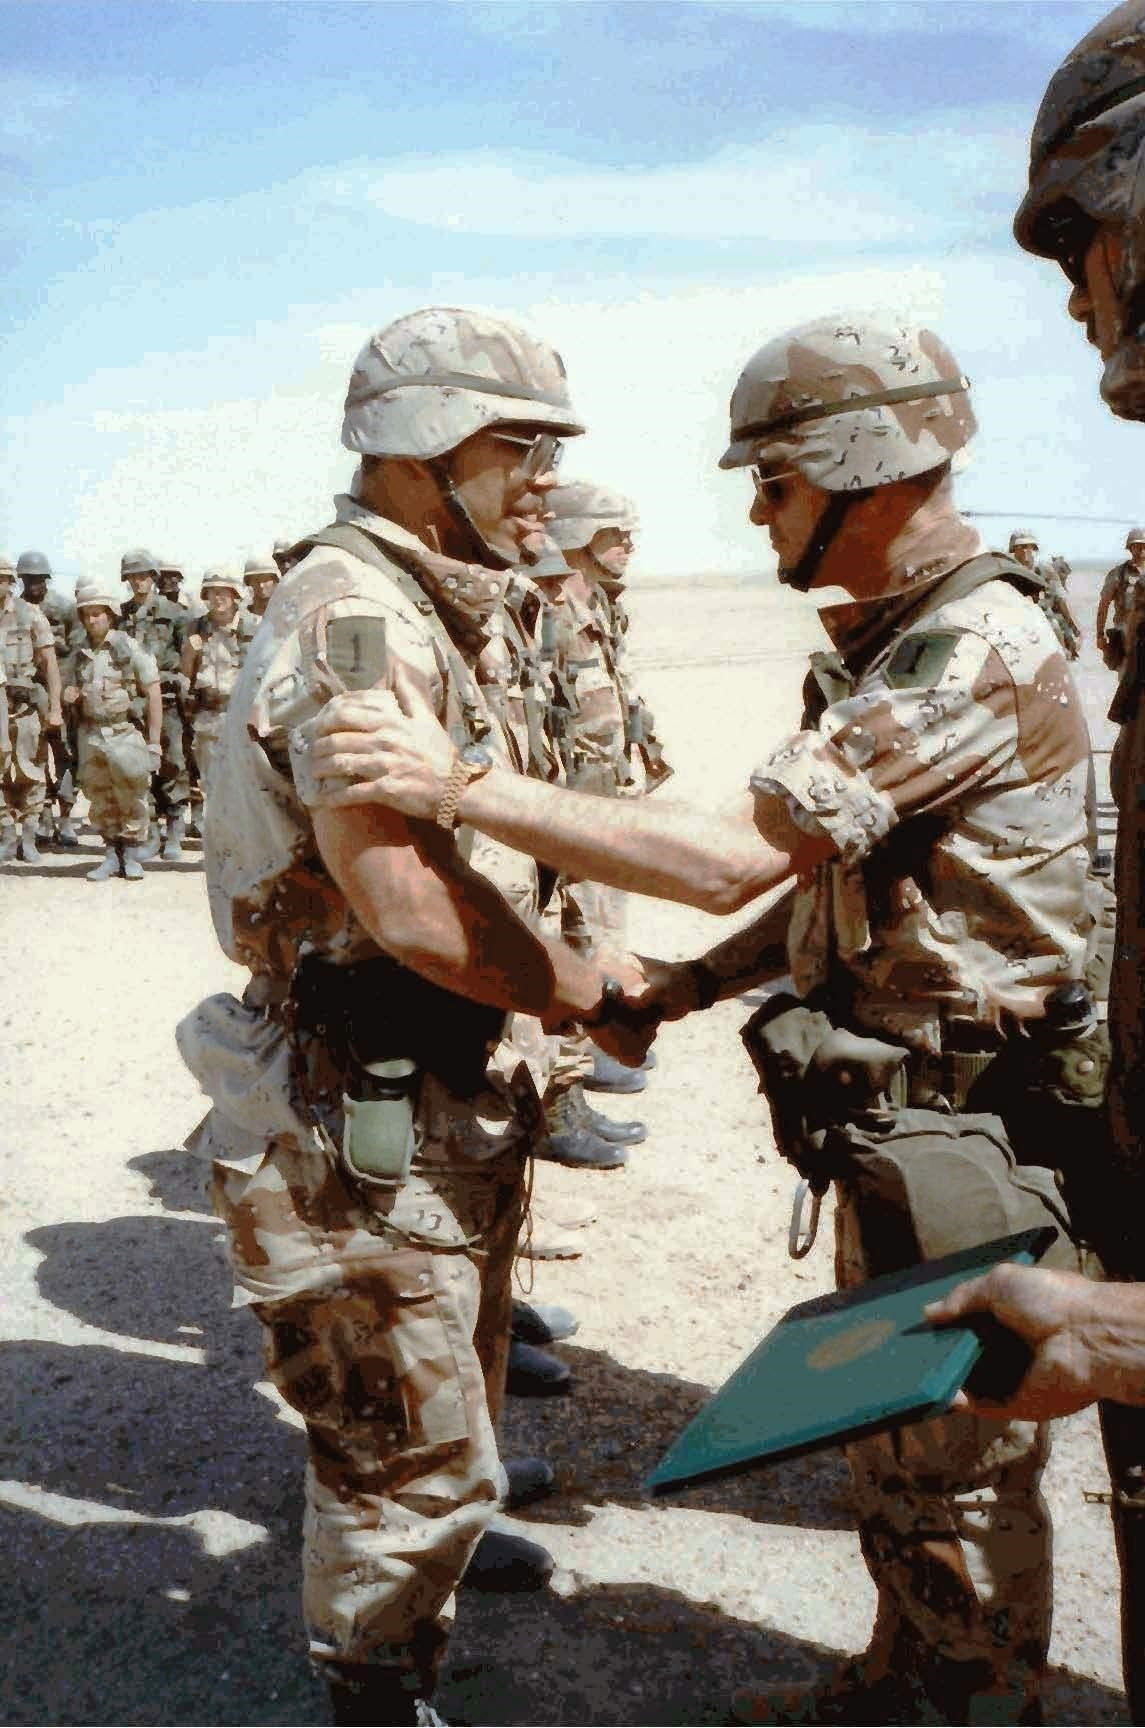 March 1991, Near Nasiriya, Iraq